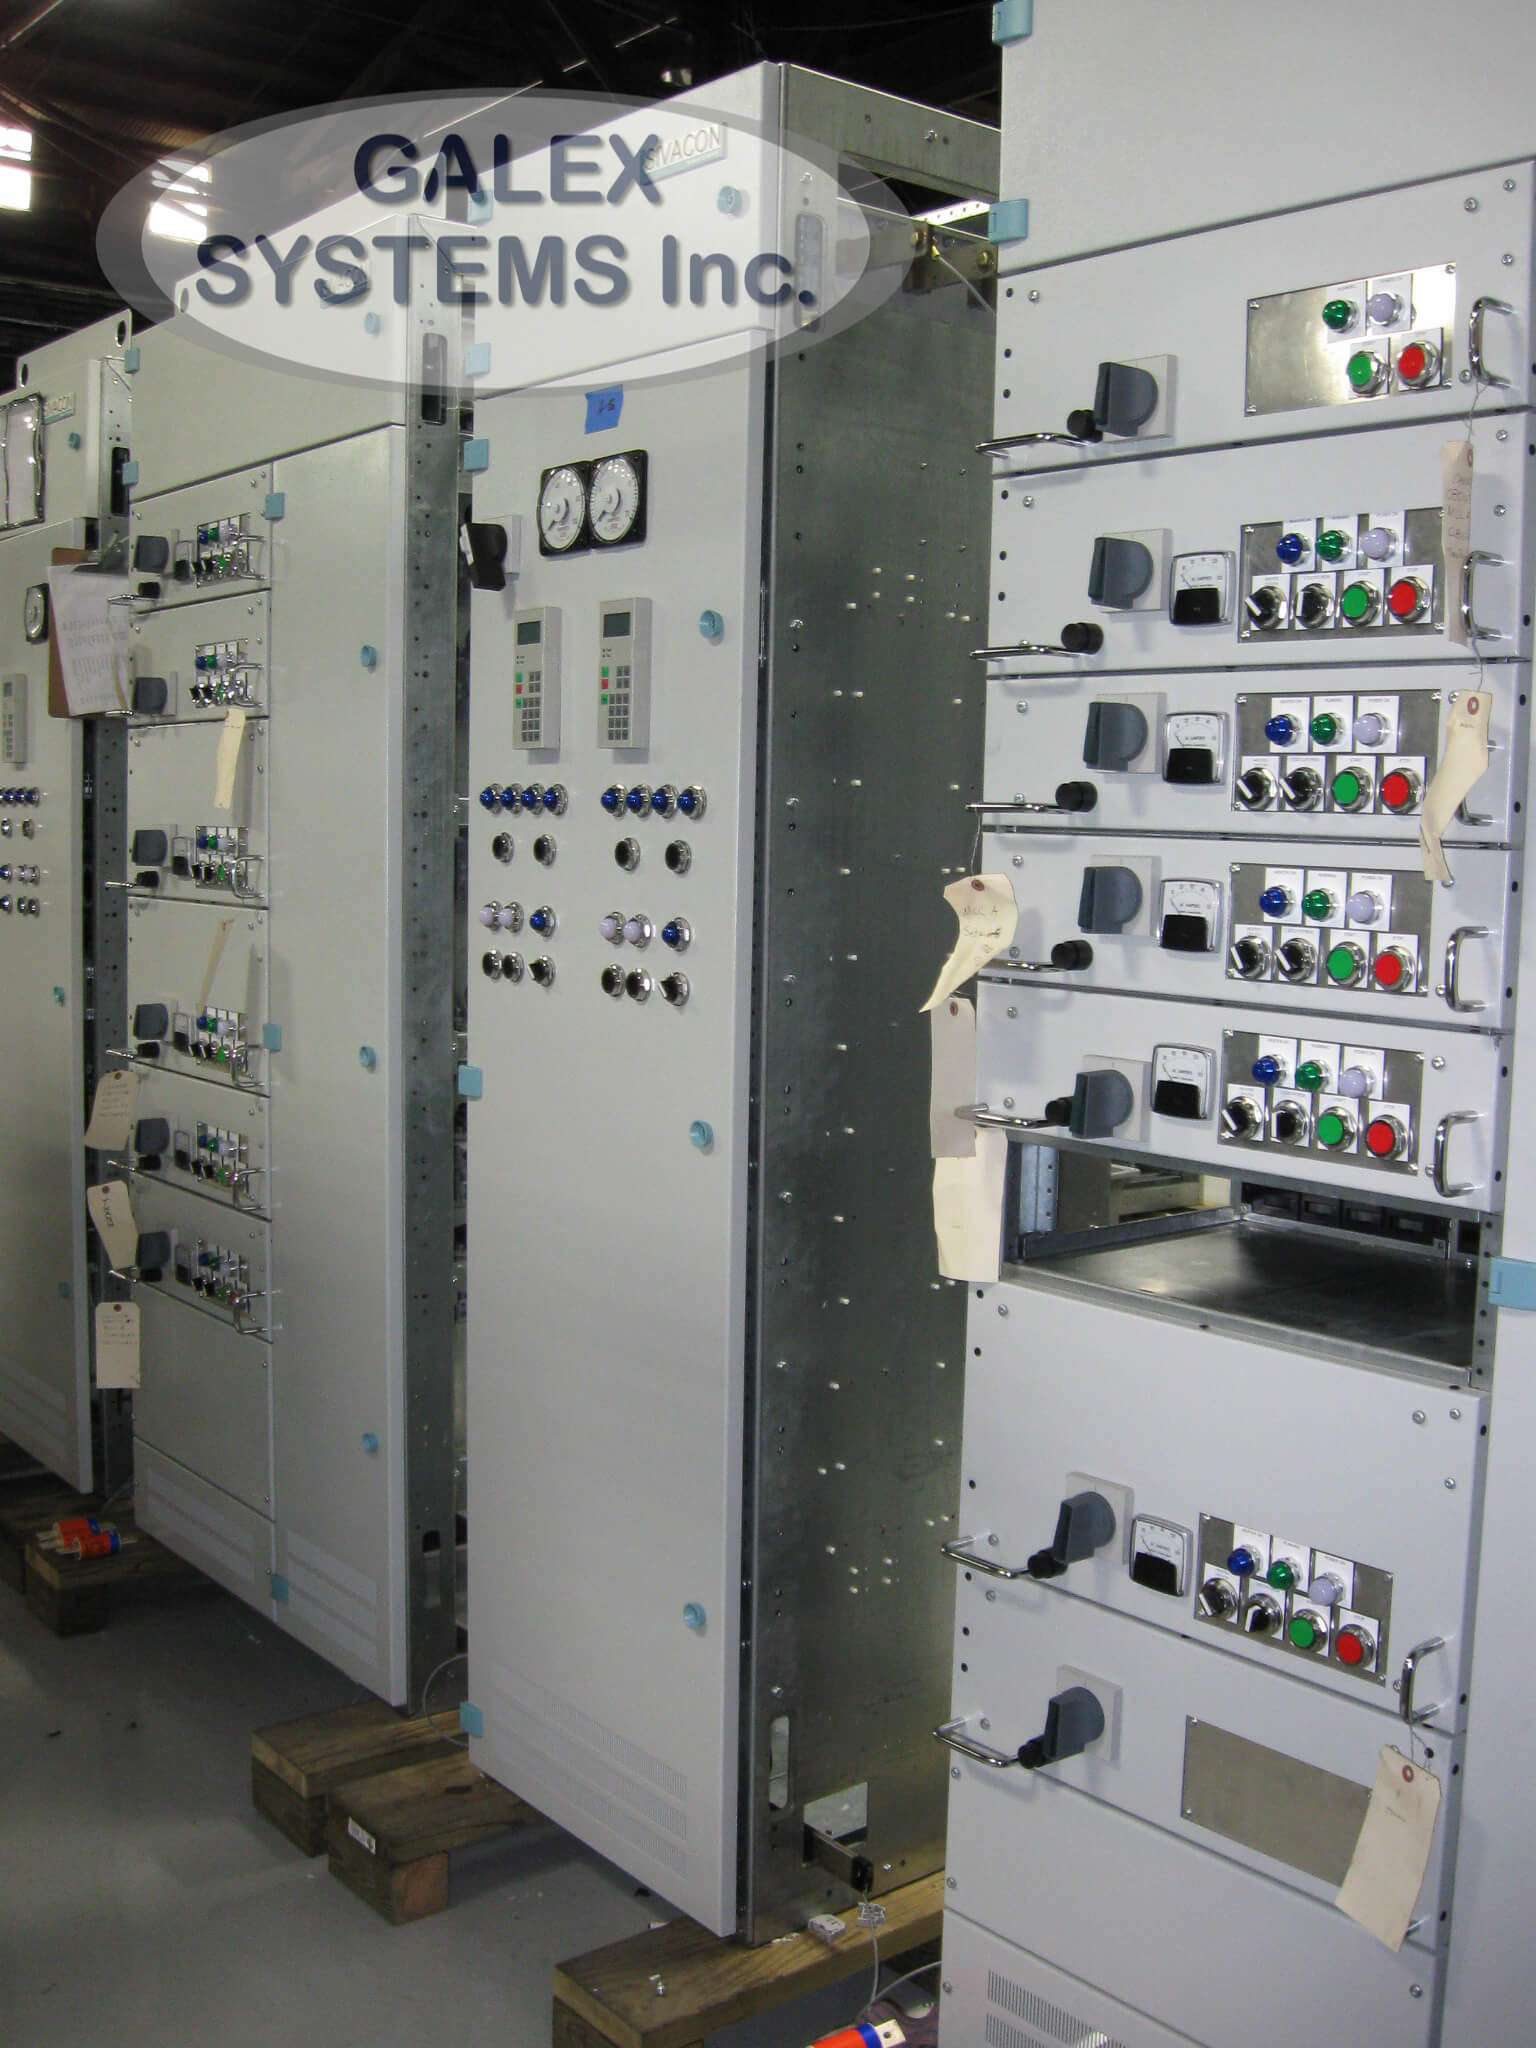 38 Motor Control Center Galex Systems Inc